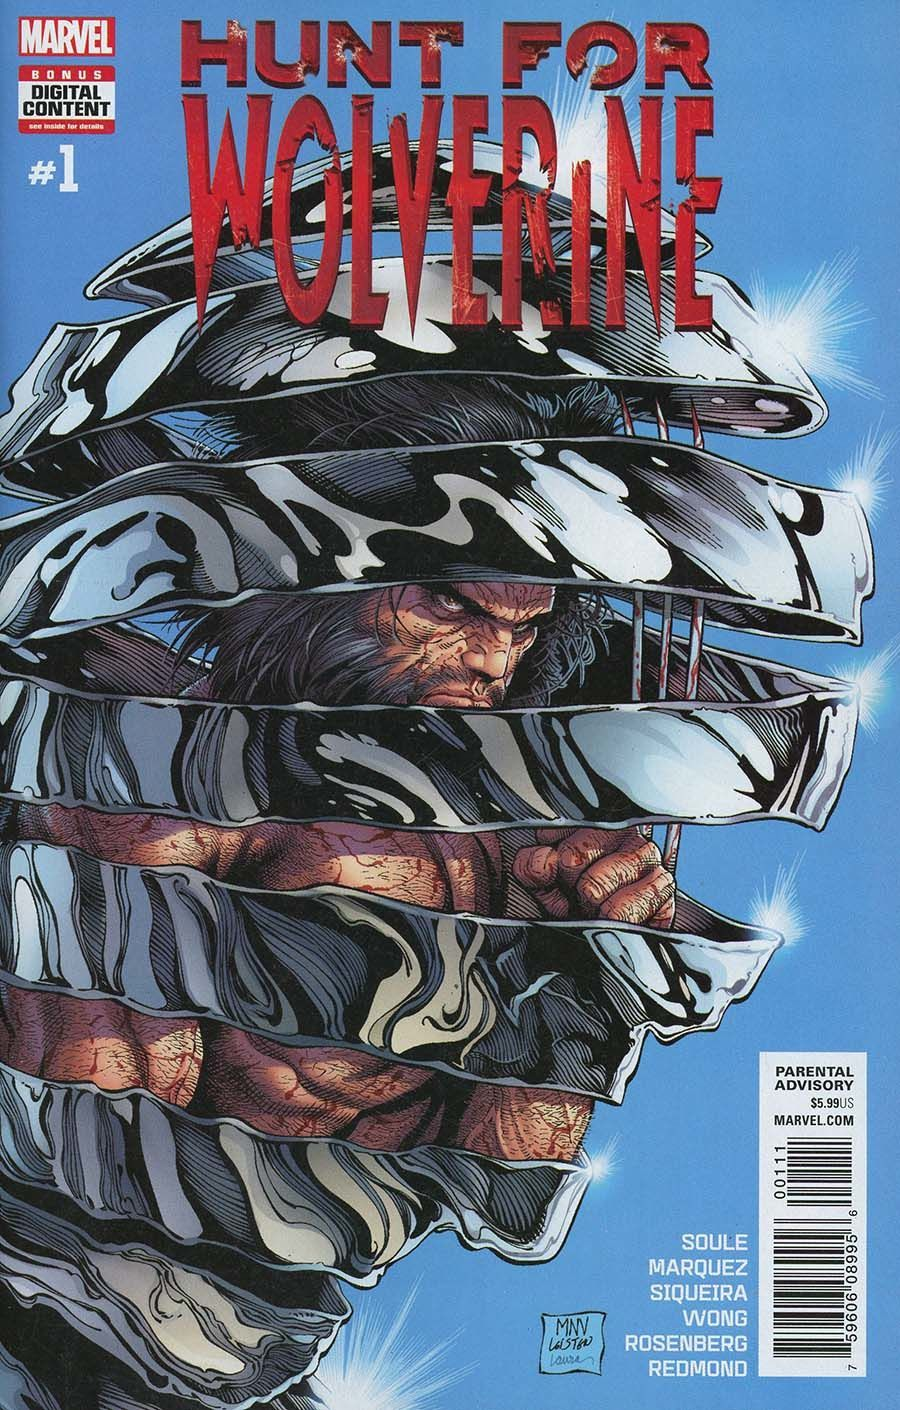 Hunt for Wolverine #1 (Writer Charles Soule, Cover Art by Steve McNiven)